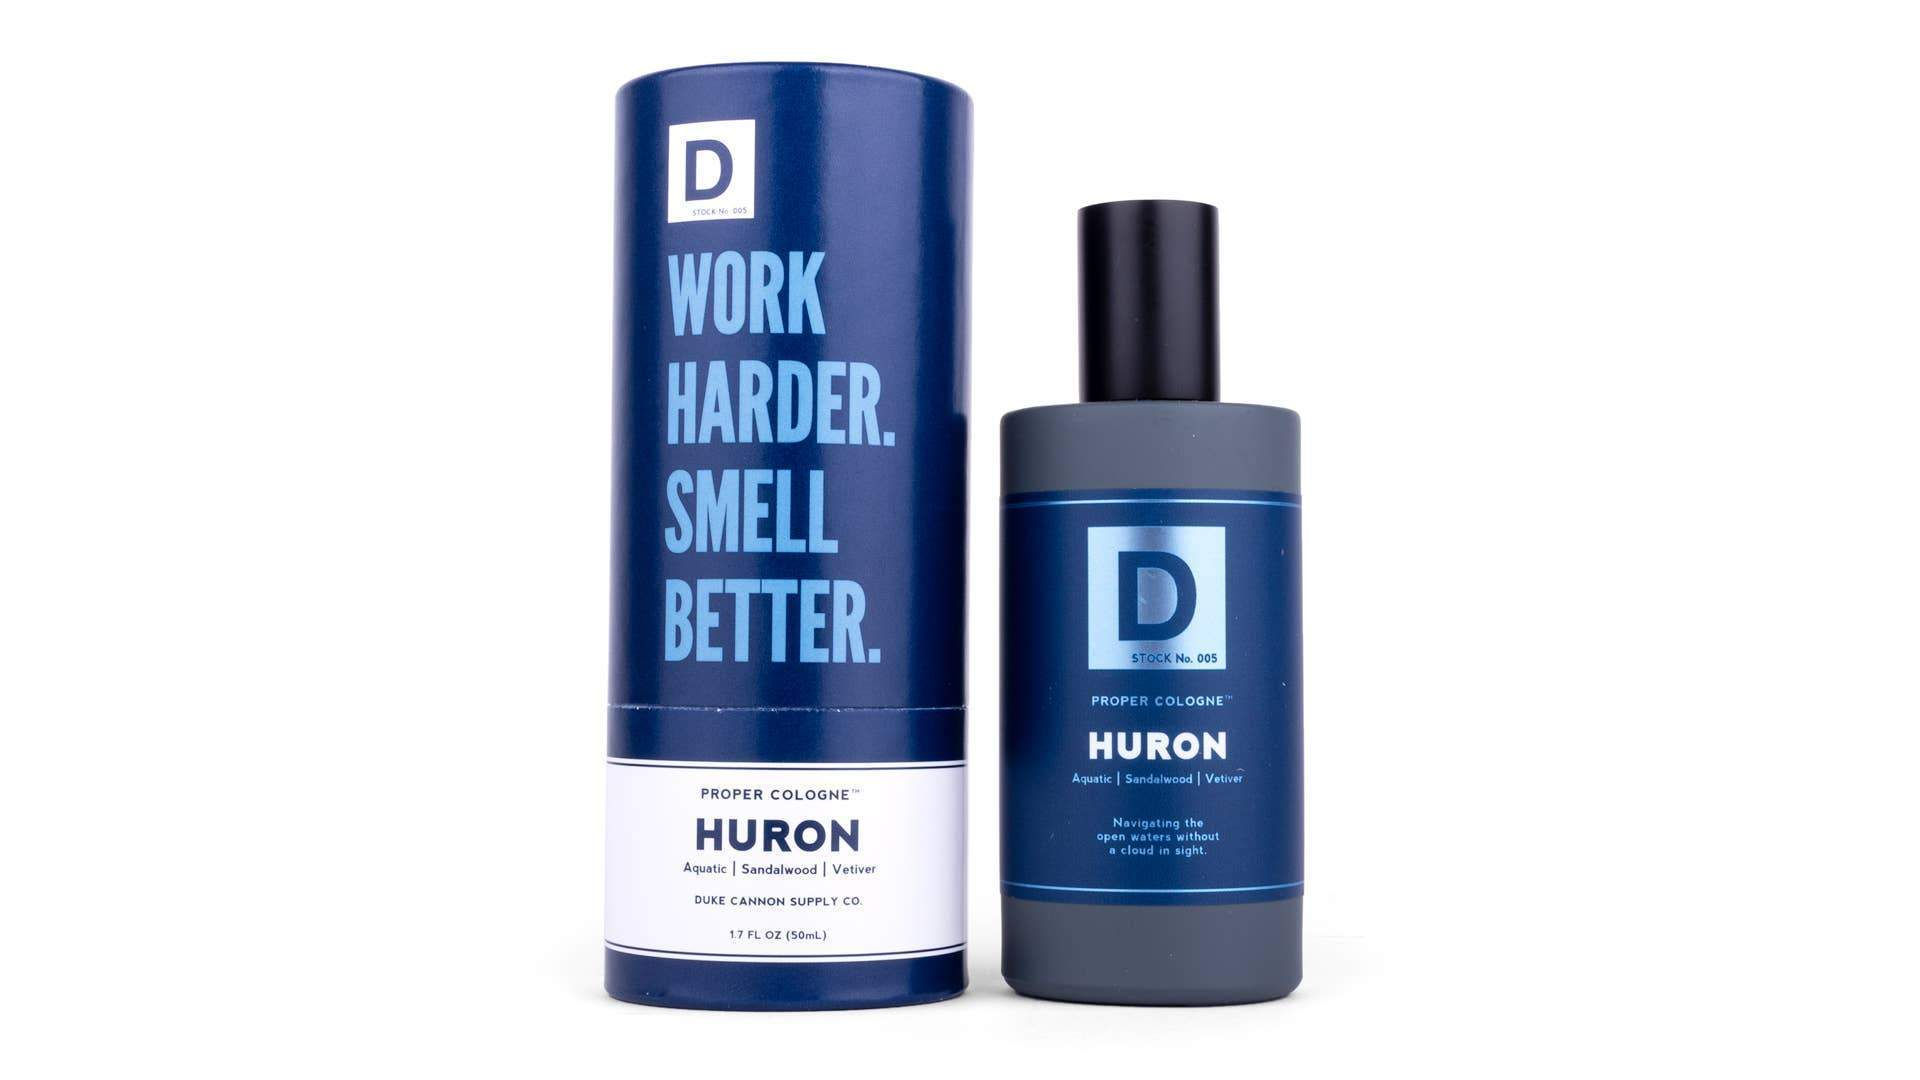 men's cologne duke cannon